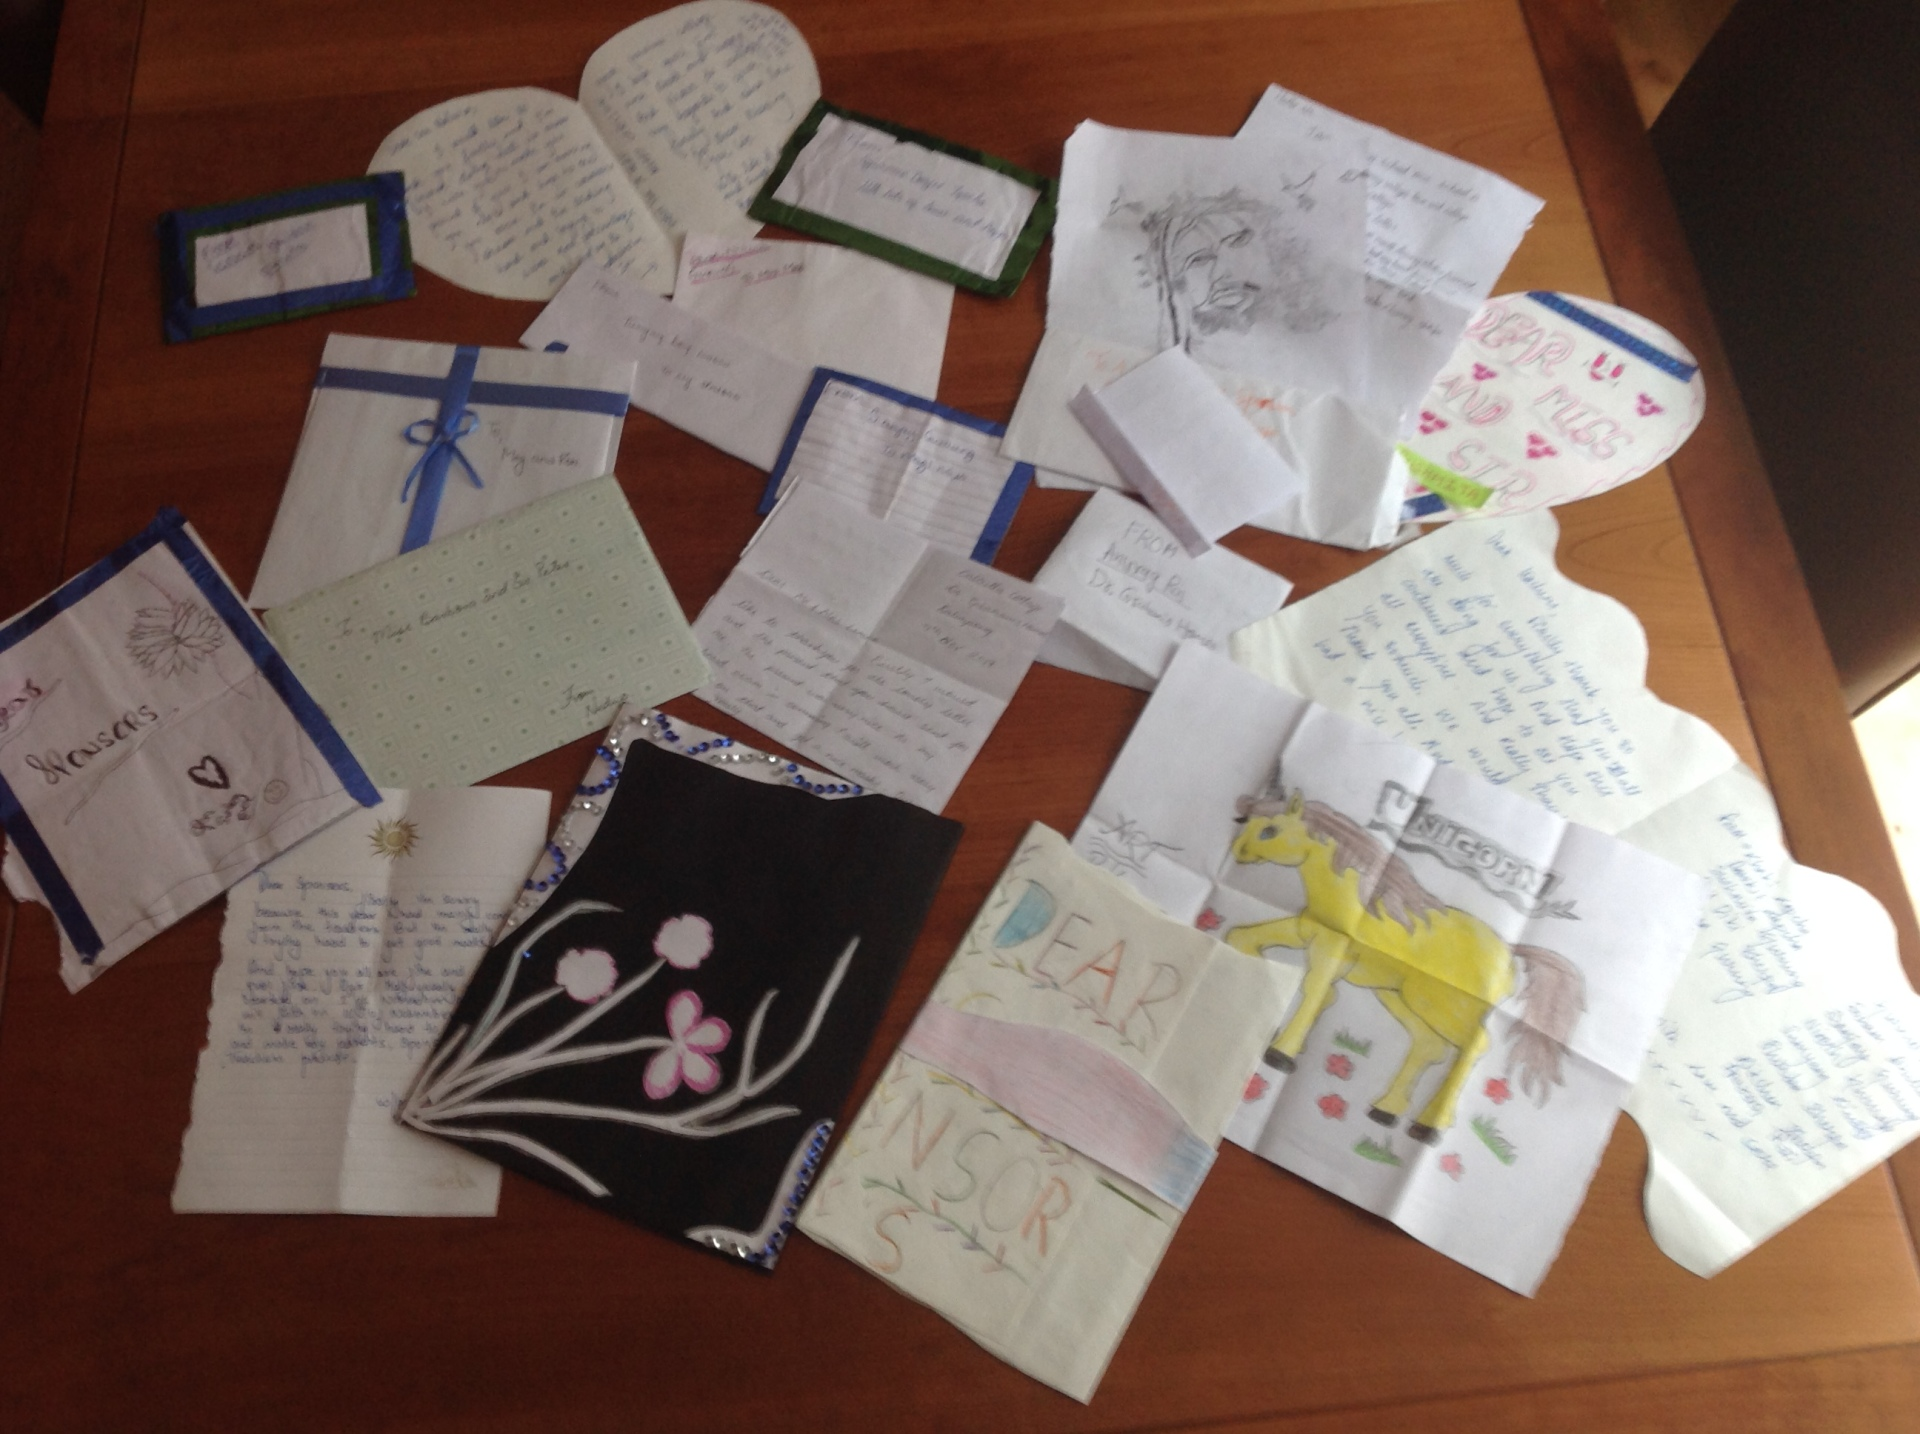 2017: The childrens' letters to sponsors